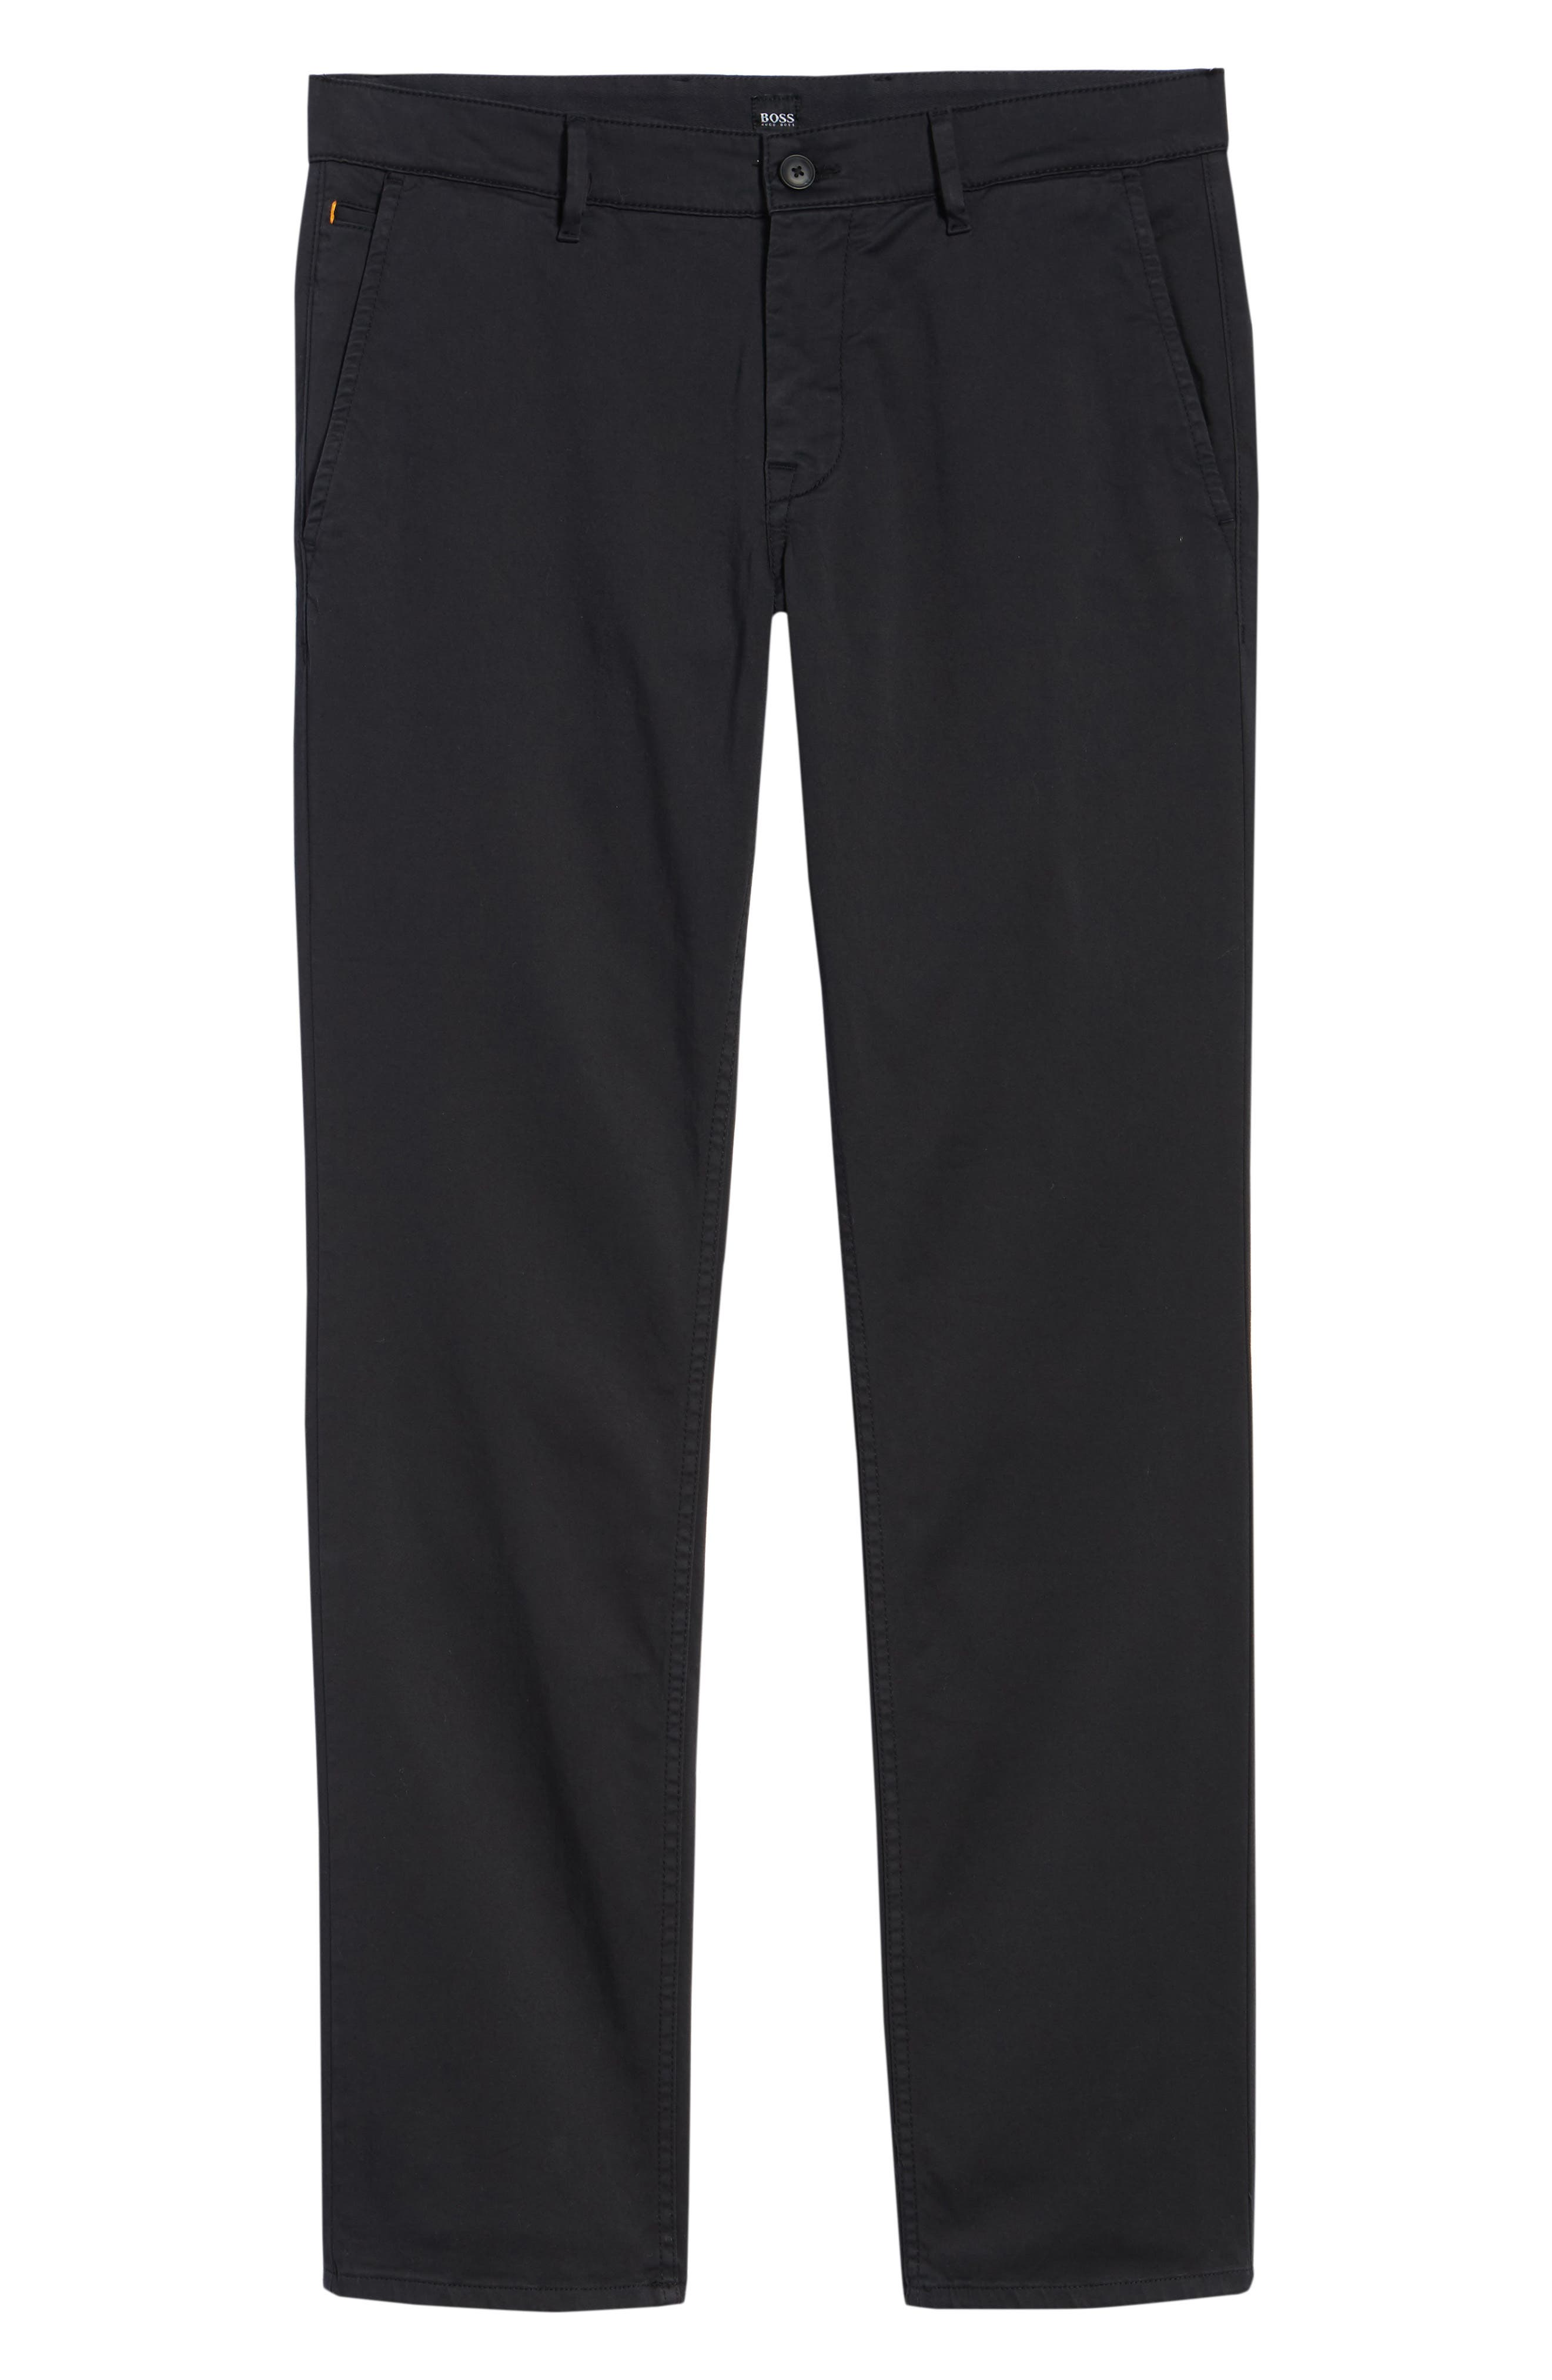 Stretch Chino Pants,                             Alternate thumbnail 6, color,                             BLACK